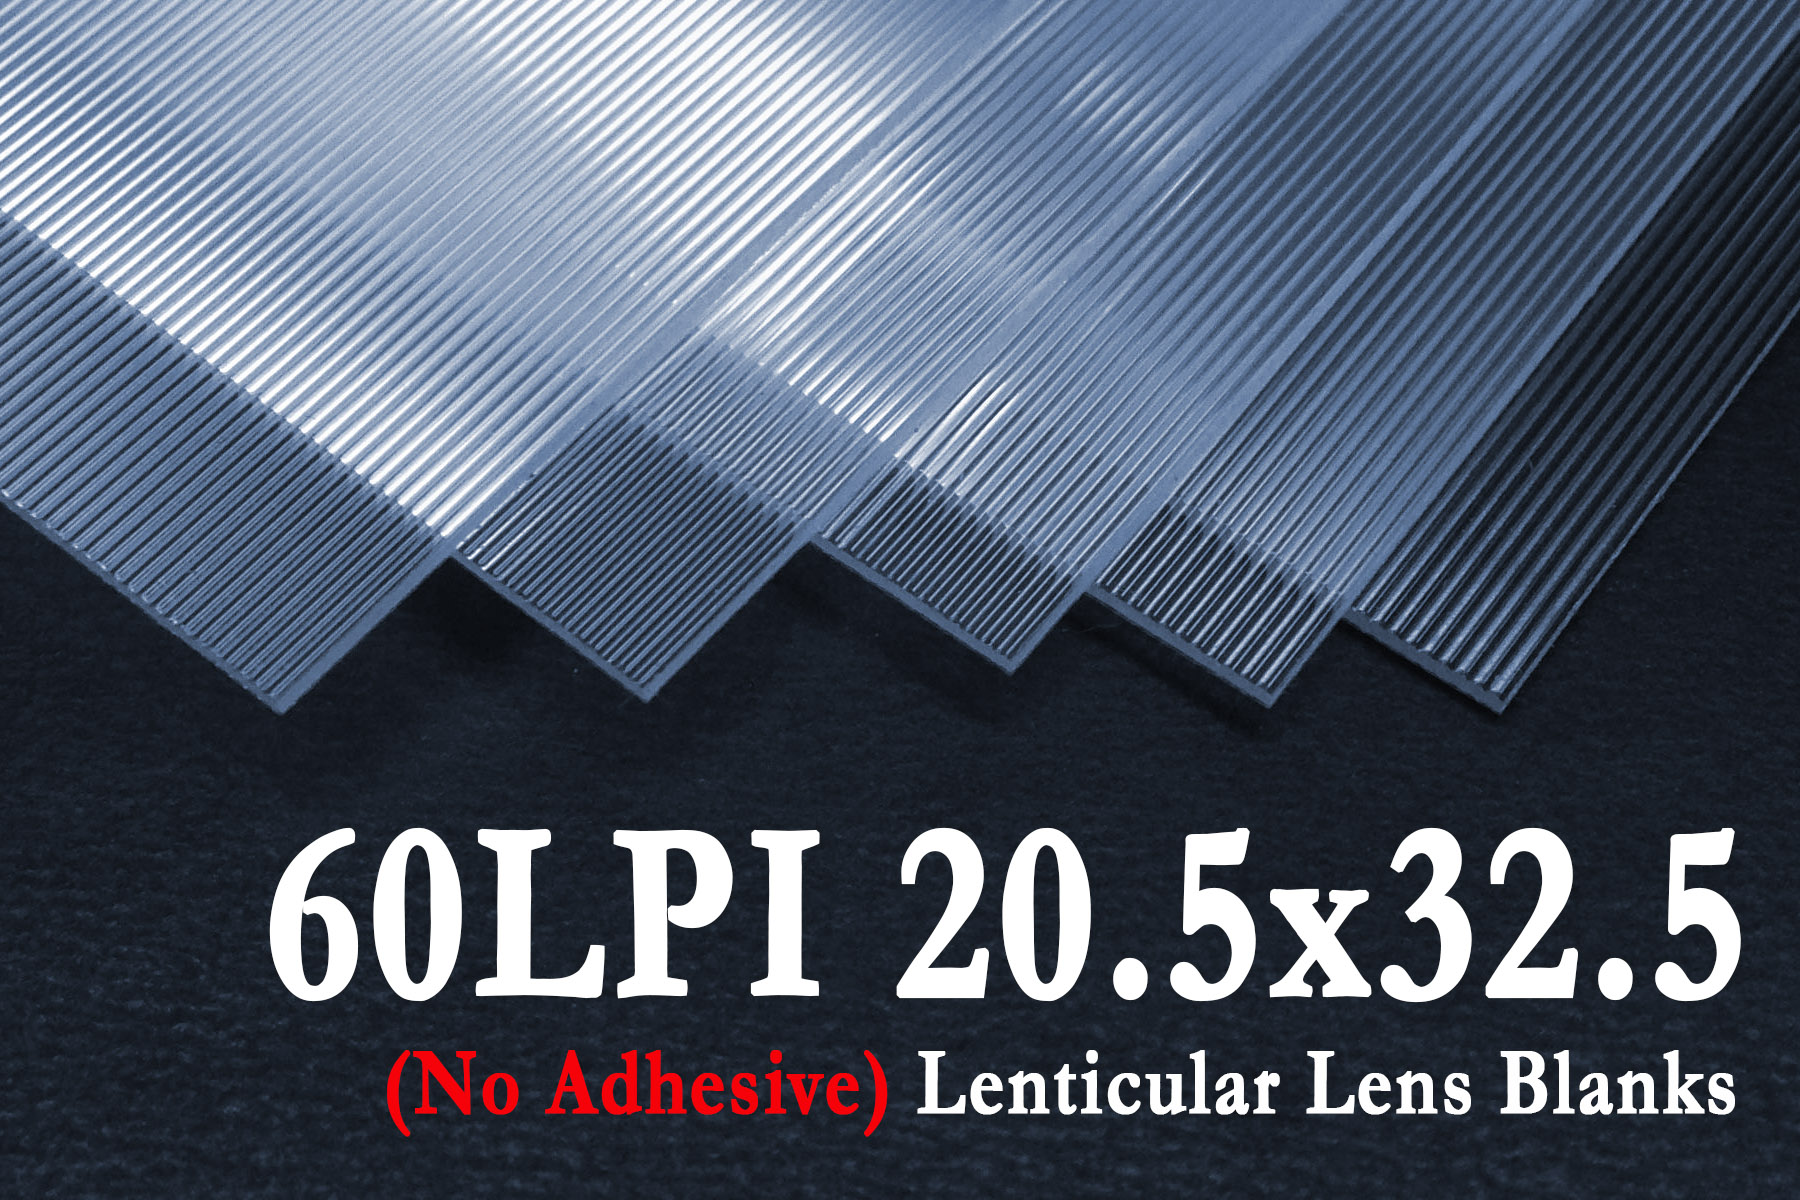 60 LPI Lenticular Sheets without Adhesive